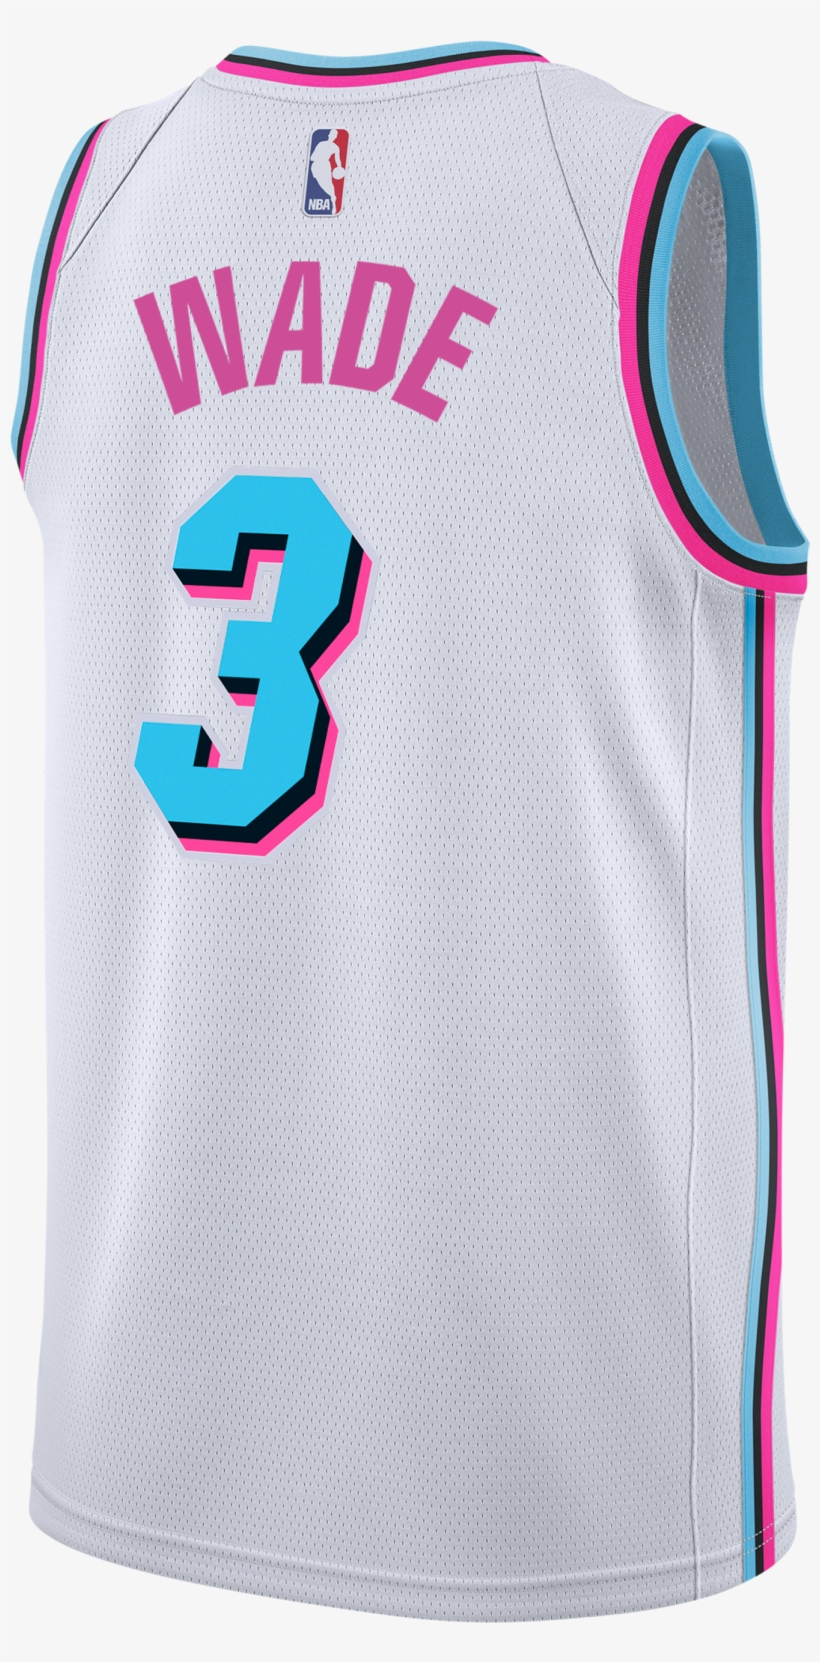 5617e13e838 Dwyane Wade Nike Miami Heat Vice Uniform City Edition - Jersey Miami Heat  2018